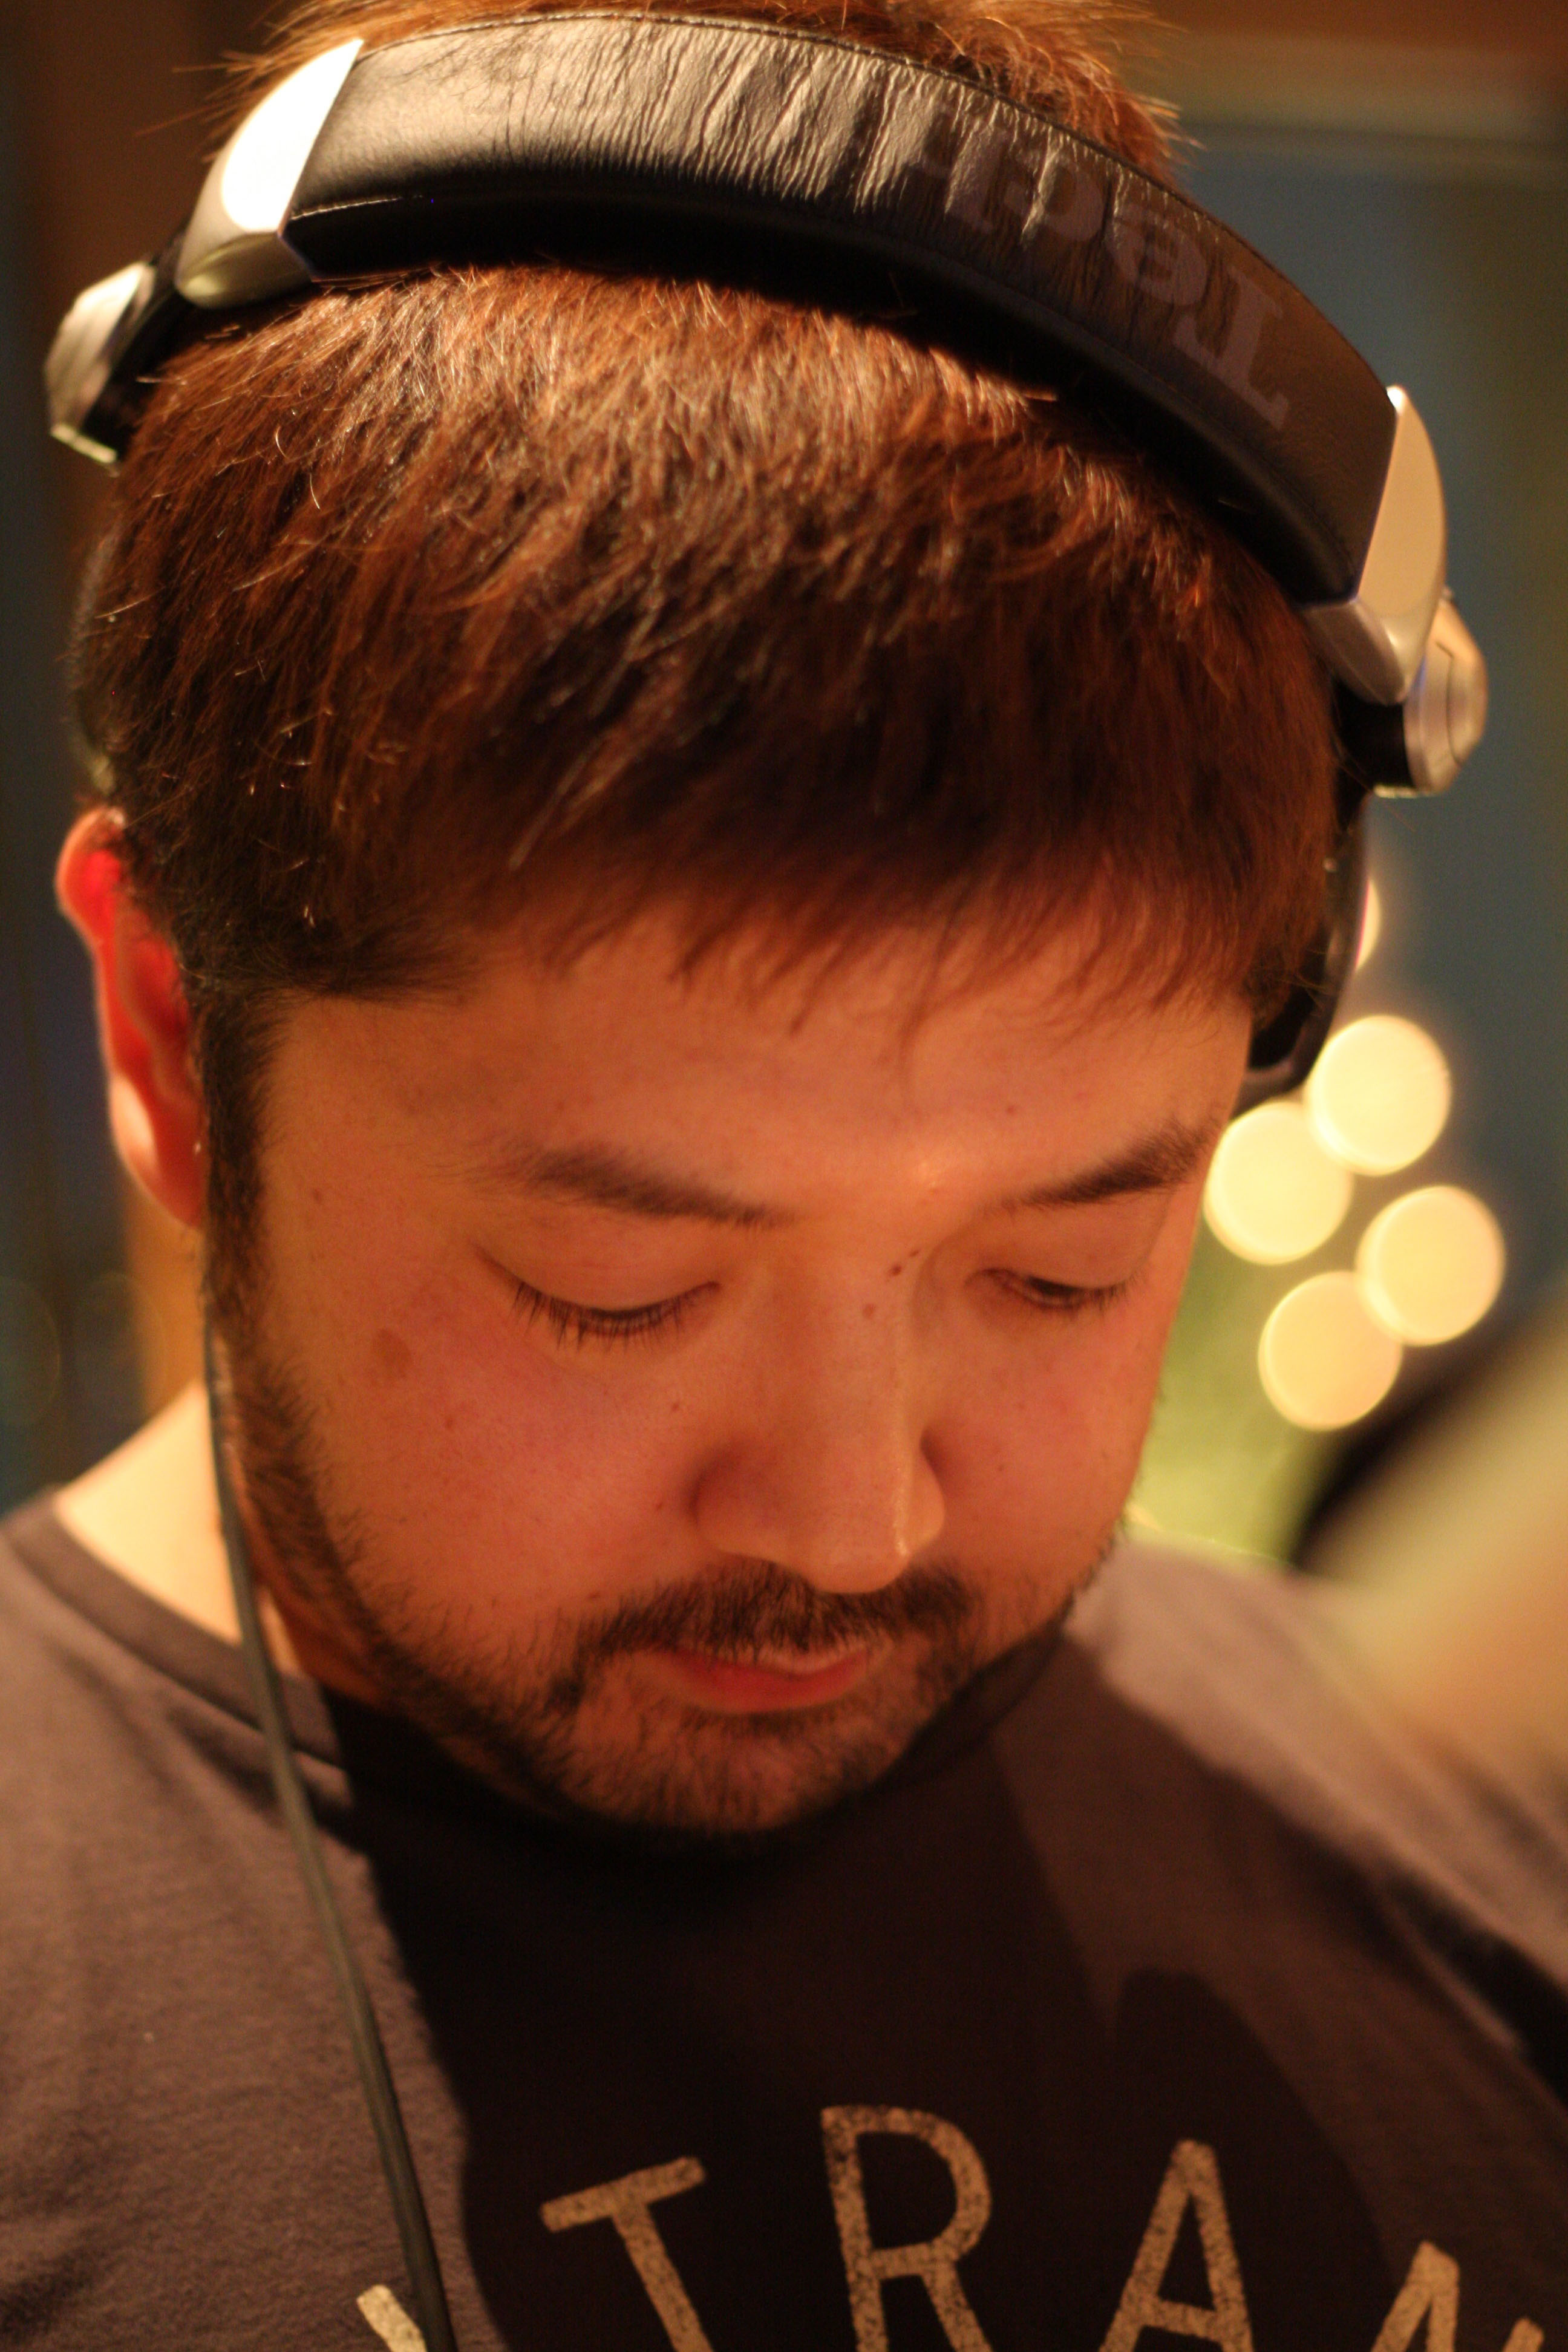 NUJABES picture